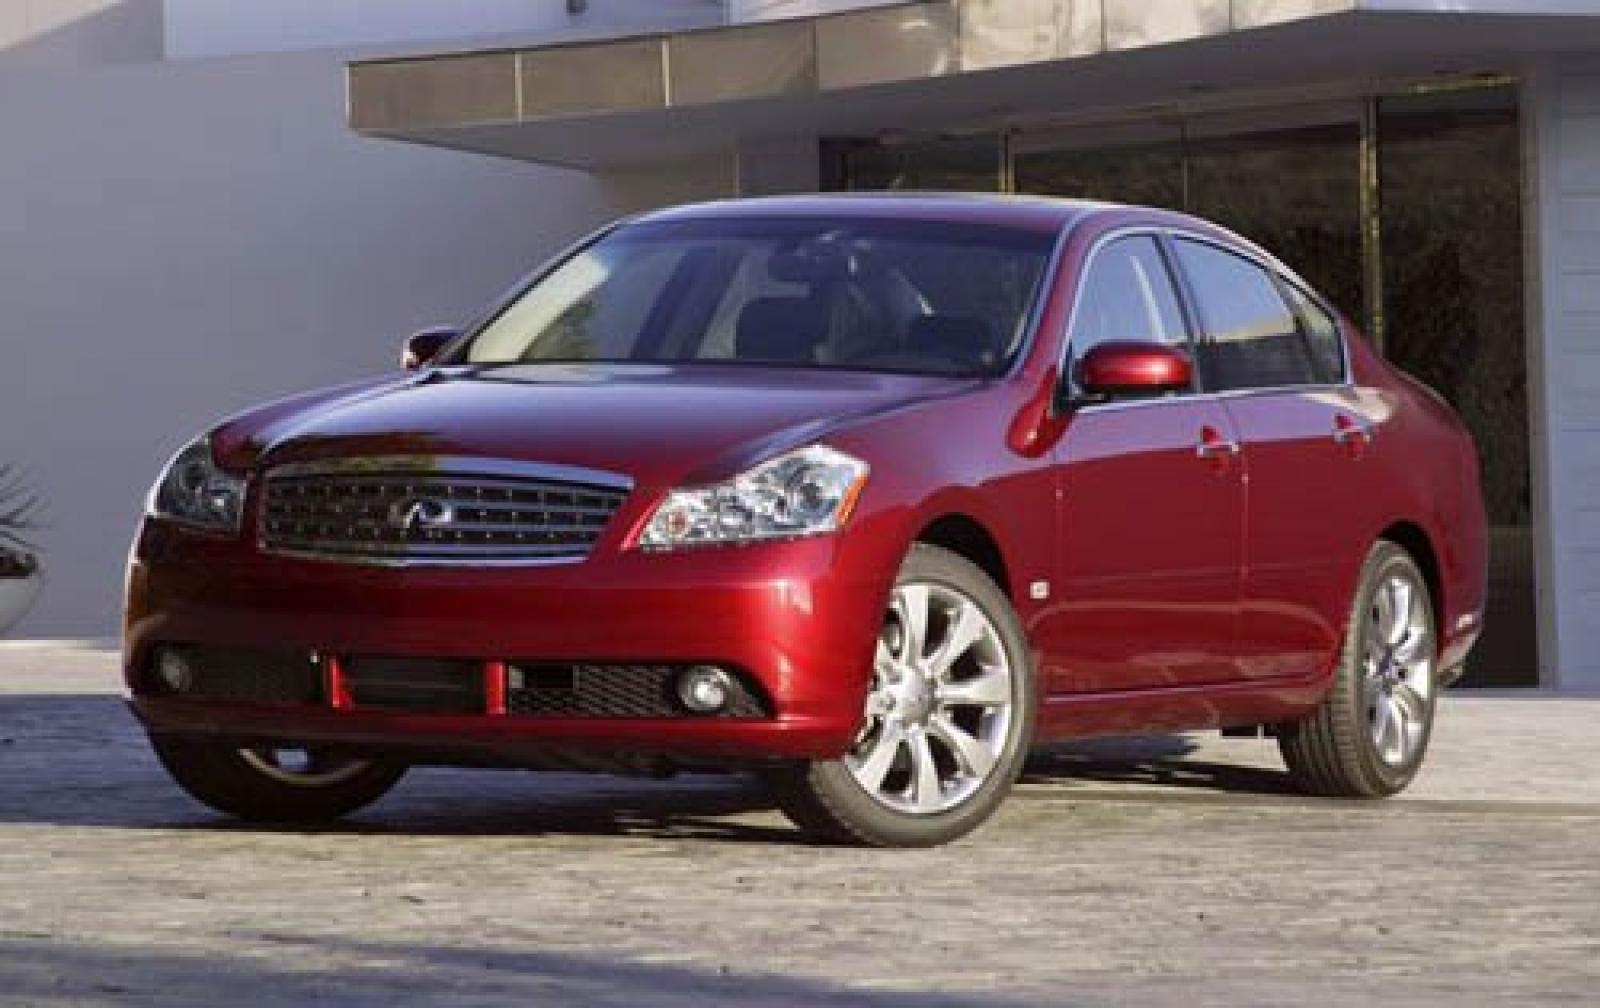 Picture of 2007 infiniti m35 4 dr awd exterior - 2006 Infiniti M45 Information And Photos Zombiedrive Infiniti Gallery Vanachro Images